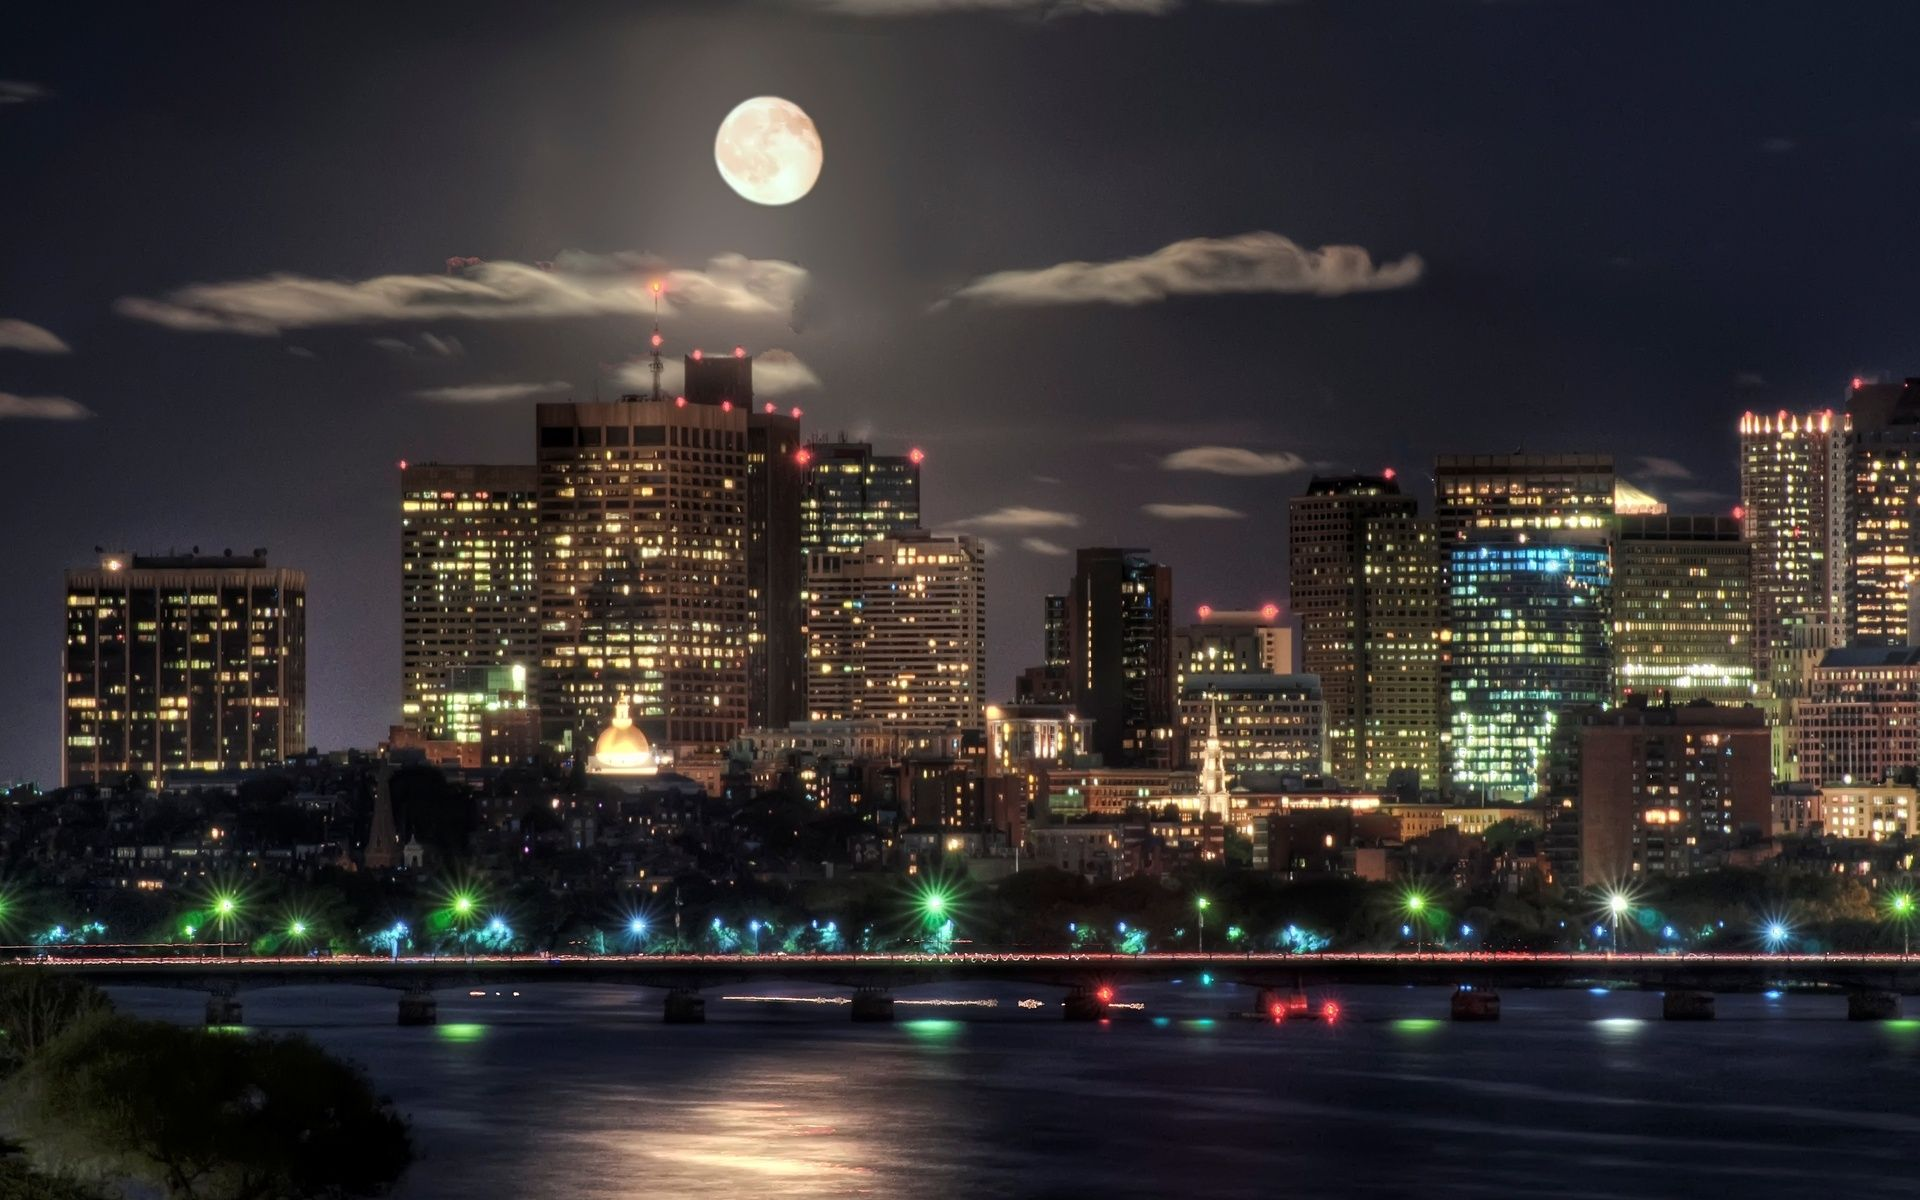 Image detail for -Wallpaper night, city, lights, moon | HD Desktop ... for City Lights At Night Wallpaper  110ylc